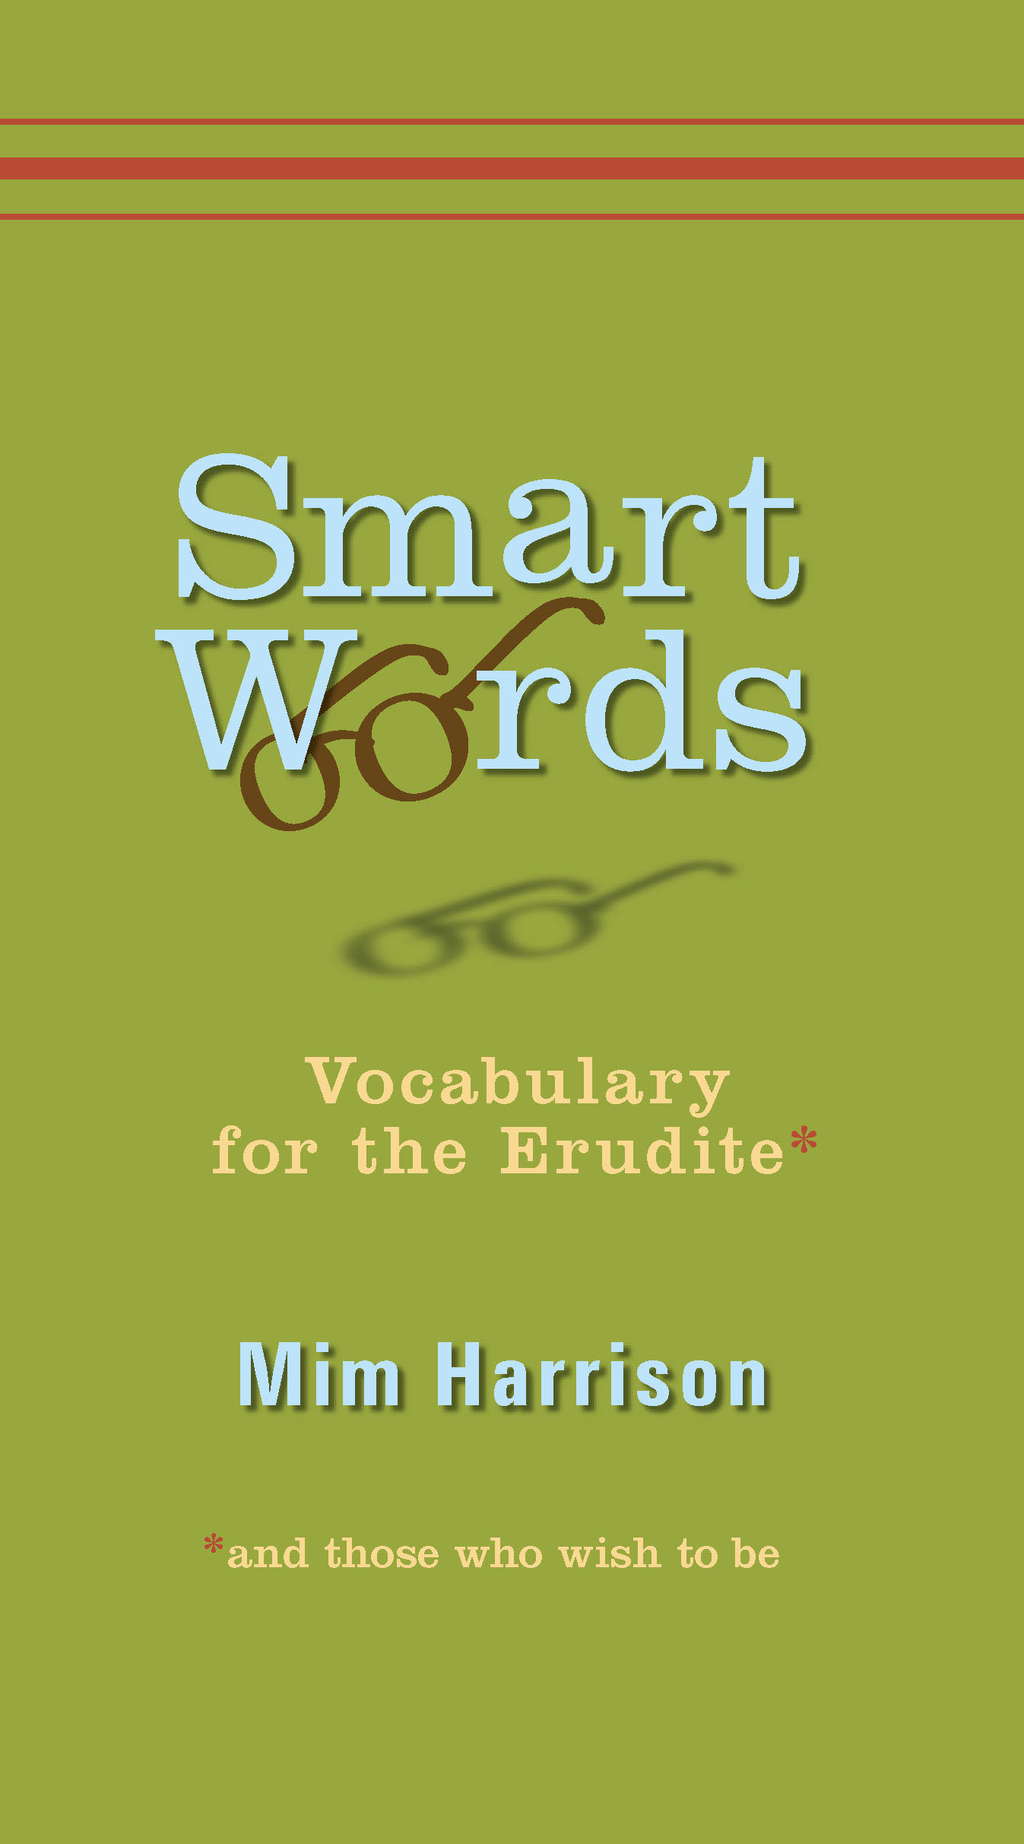 Smart Words: Vocabulary for the Erudite